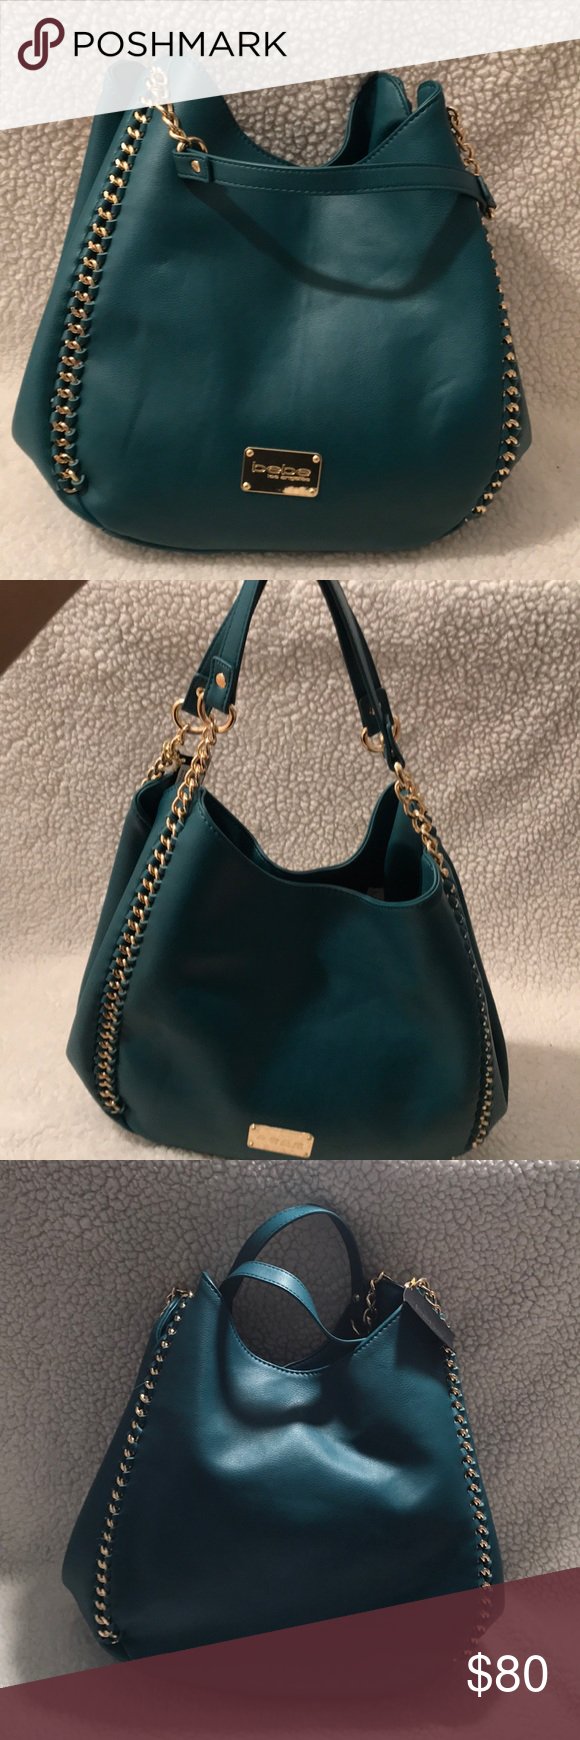 Just AddedHost Pick Bebe 3 Pocket Tote Bag 3 Pocket Tote bag by Bebe. Two Size Snap closure. one Middle zipper. Color is a Greenish Blue with gold chain trim. bebe Bags Shoulder Bags